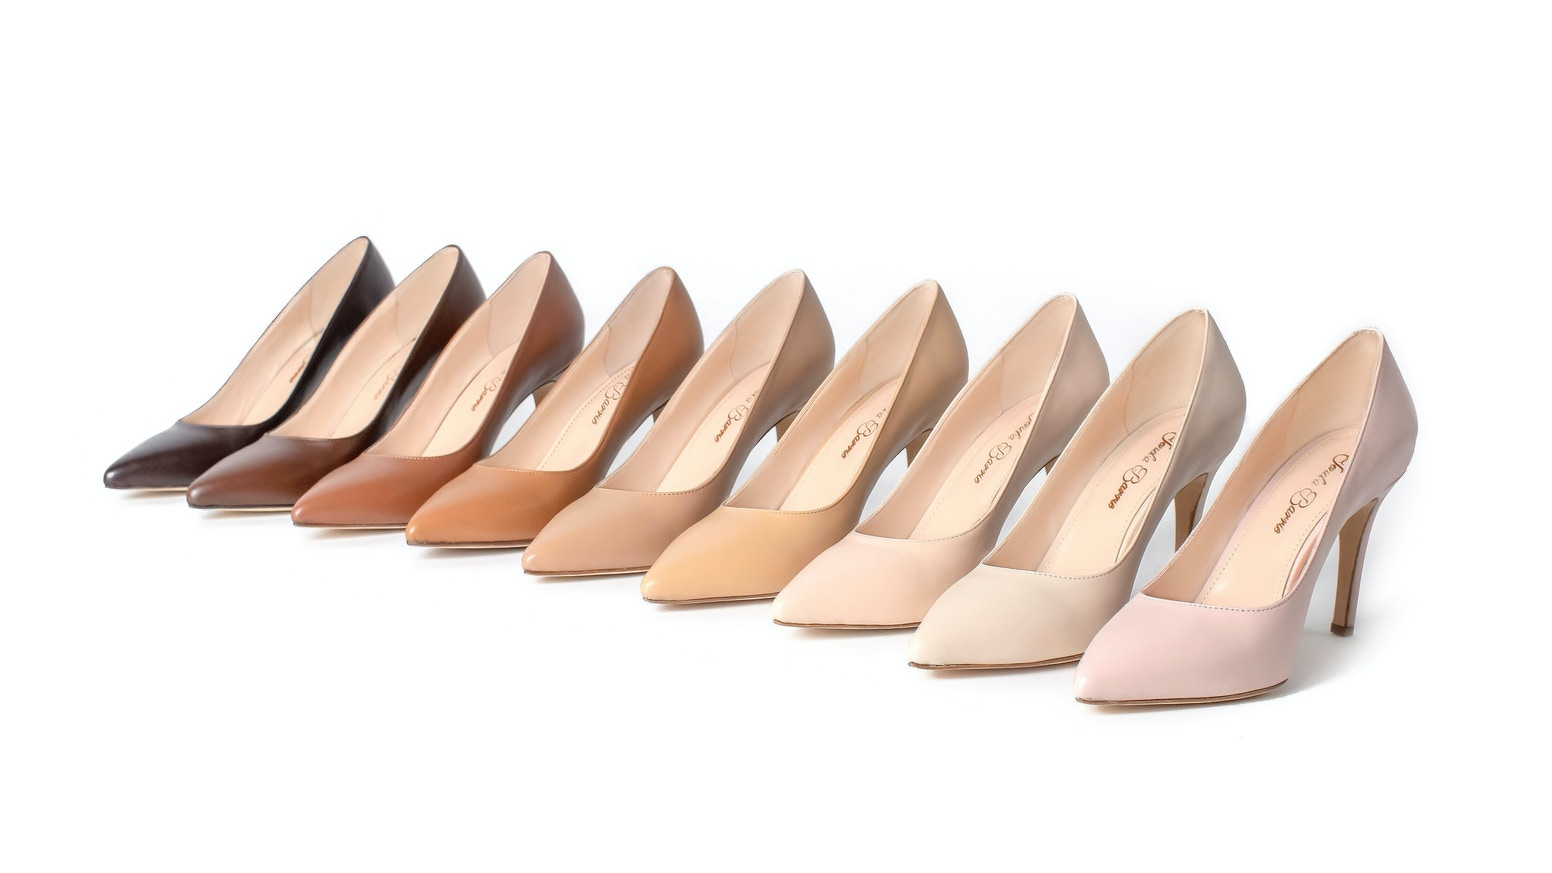 A luxury skin-tone shoe line dedicated to redefining the meaning of nude shoes. The Ultimate Nude Pumps have arrived!